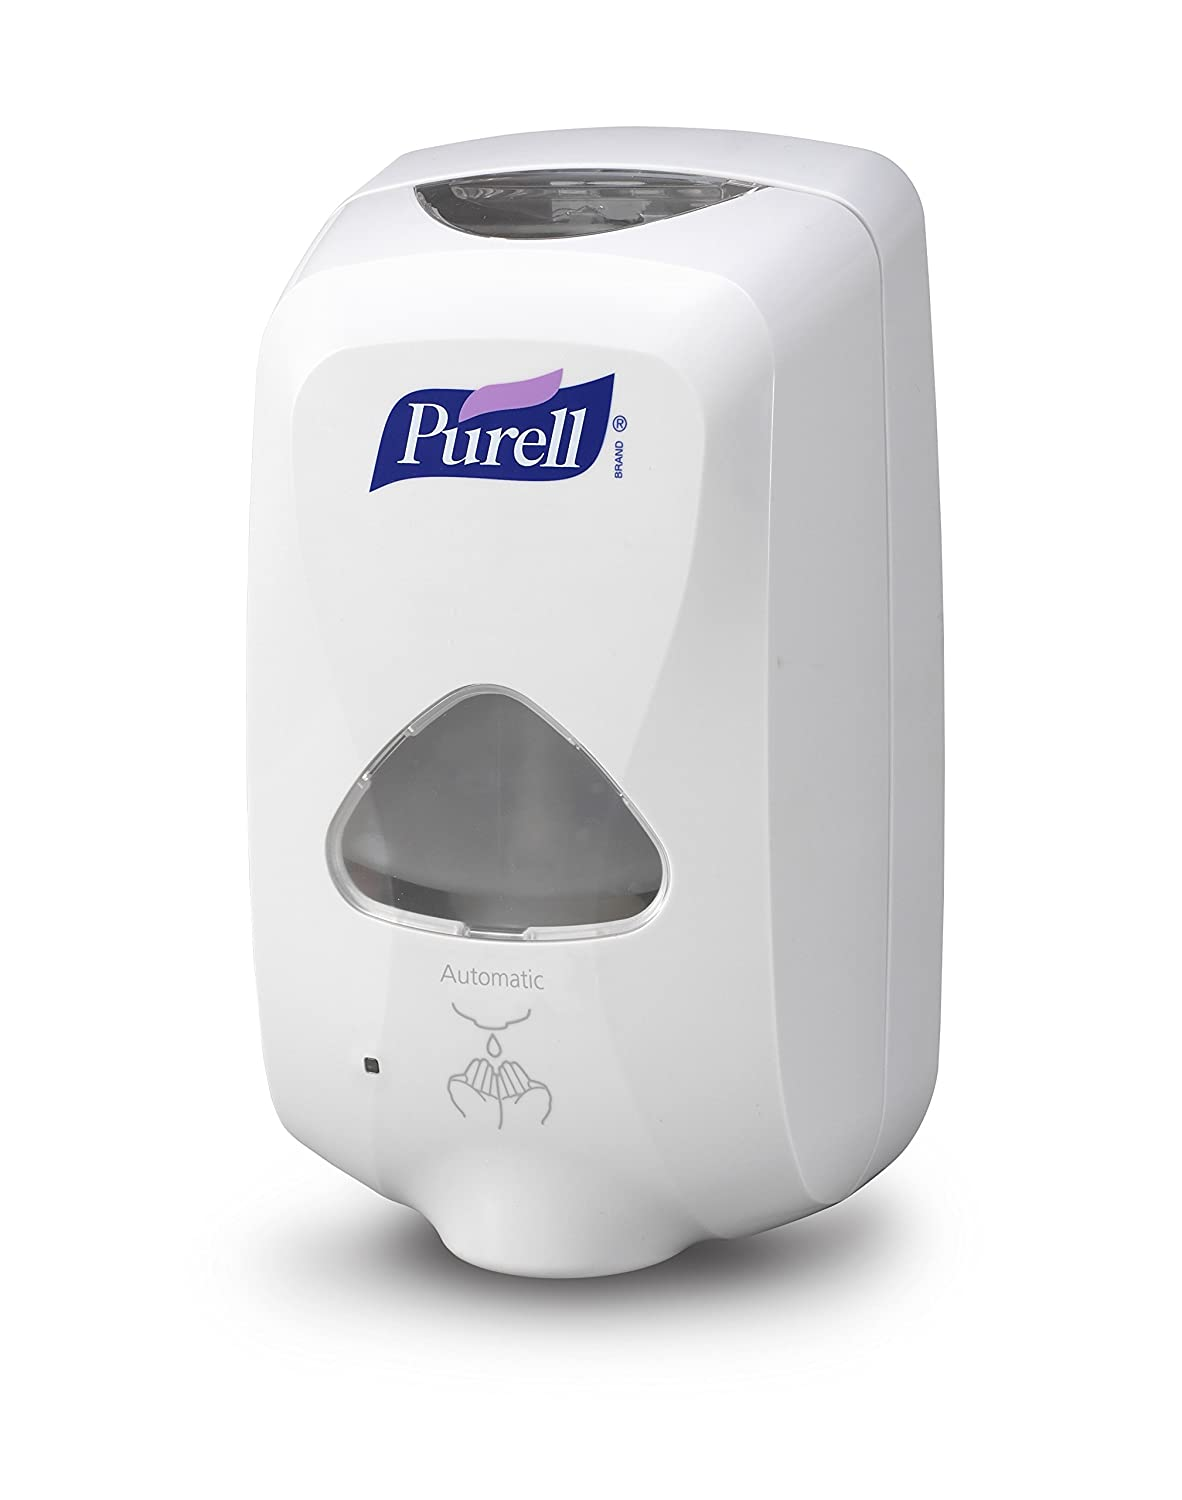 PURELL TFX Touch-Free Dispenser, White, 1200 ml GOJO Industries Inc. BN604-W